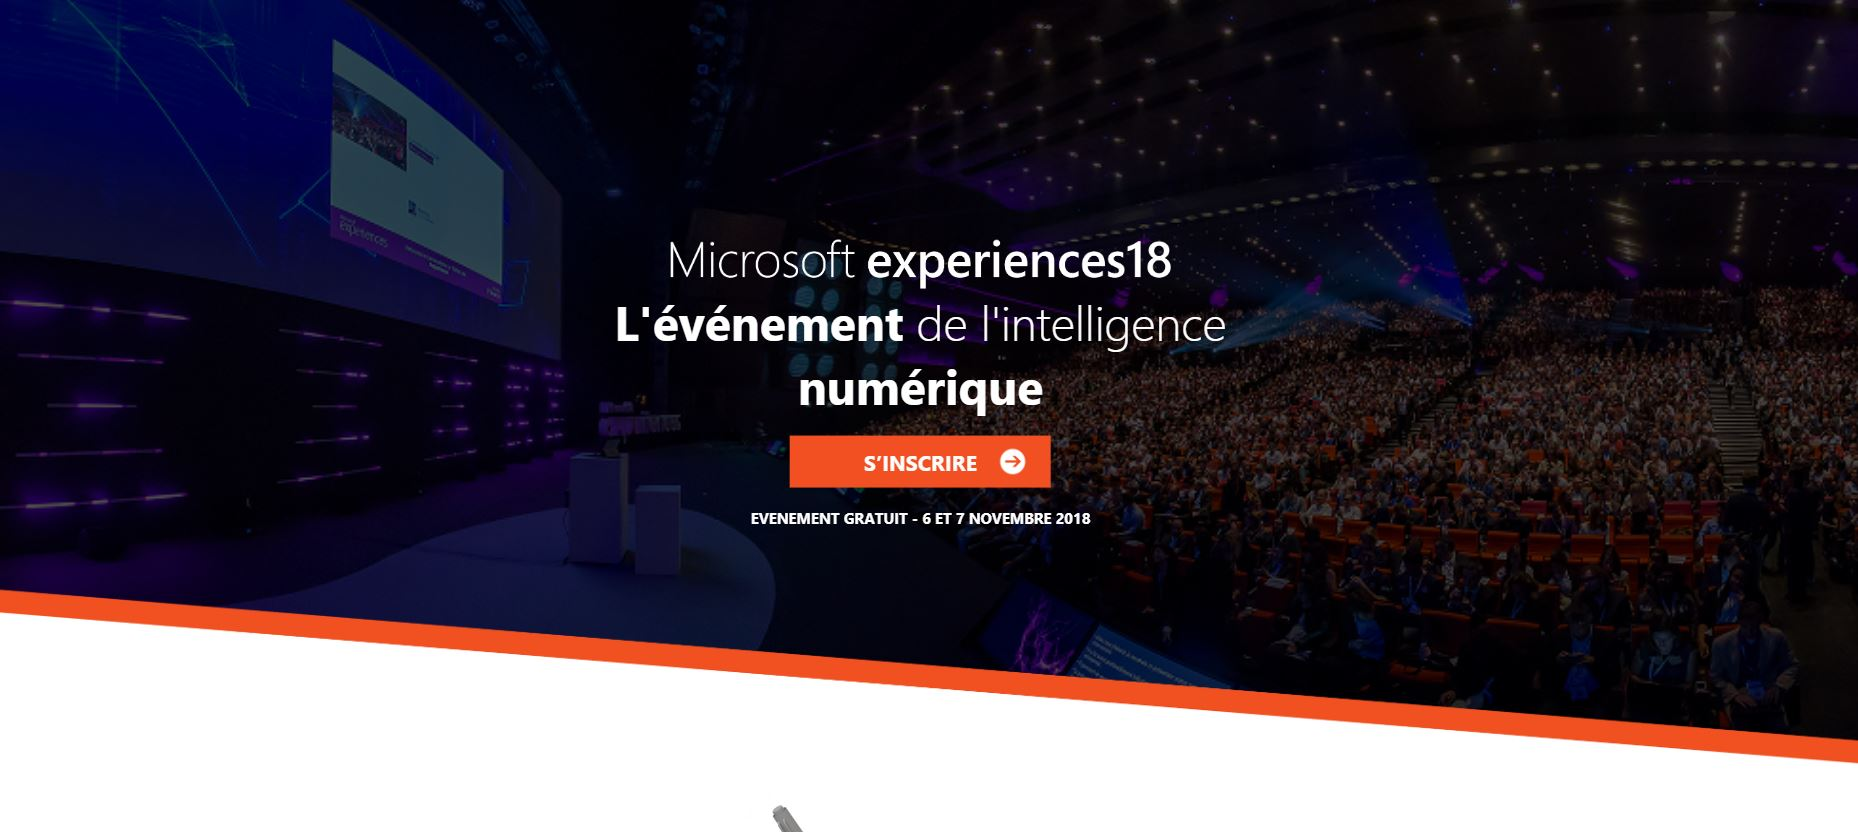 microsoft expérience 18